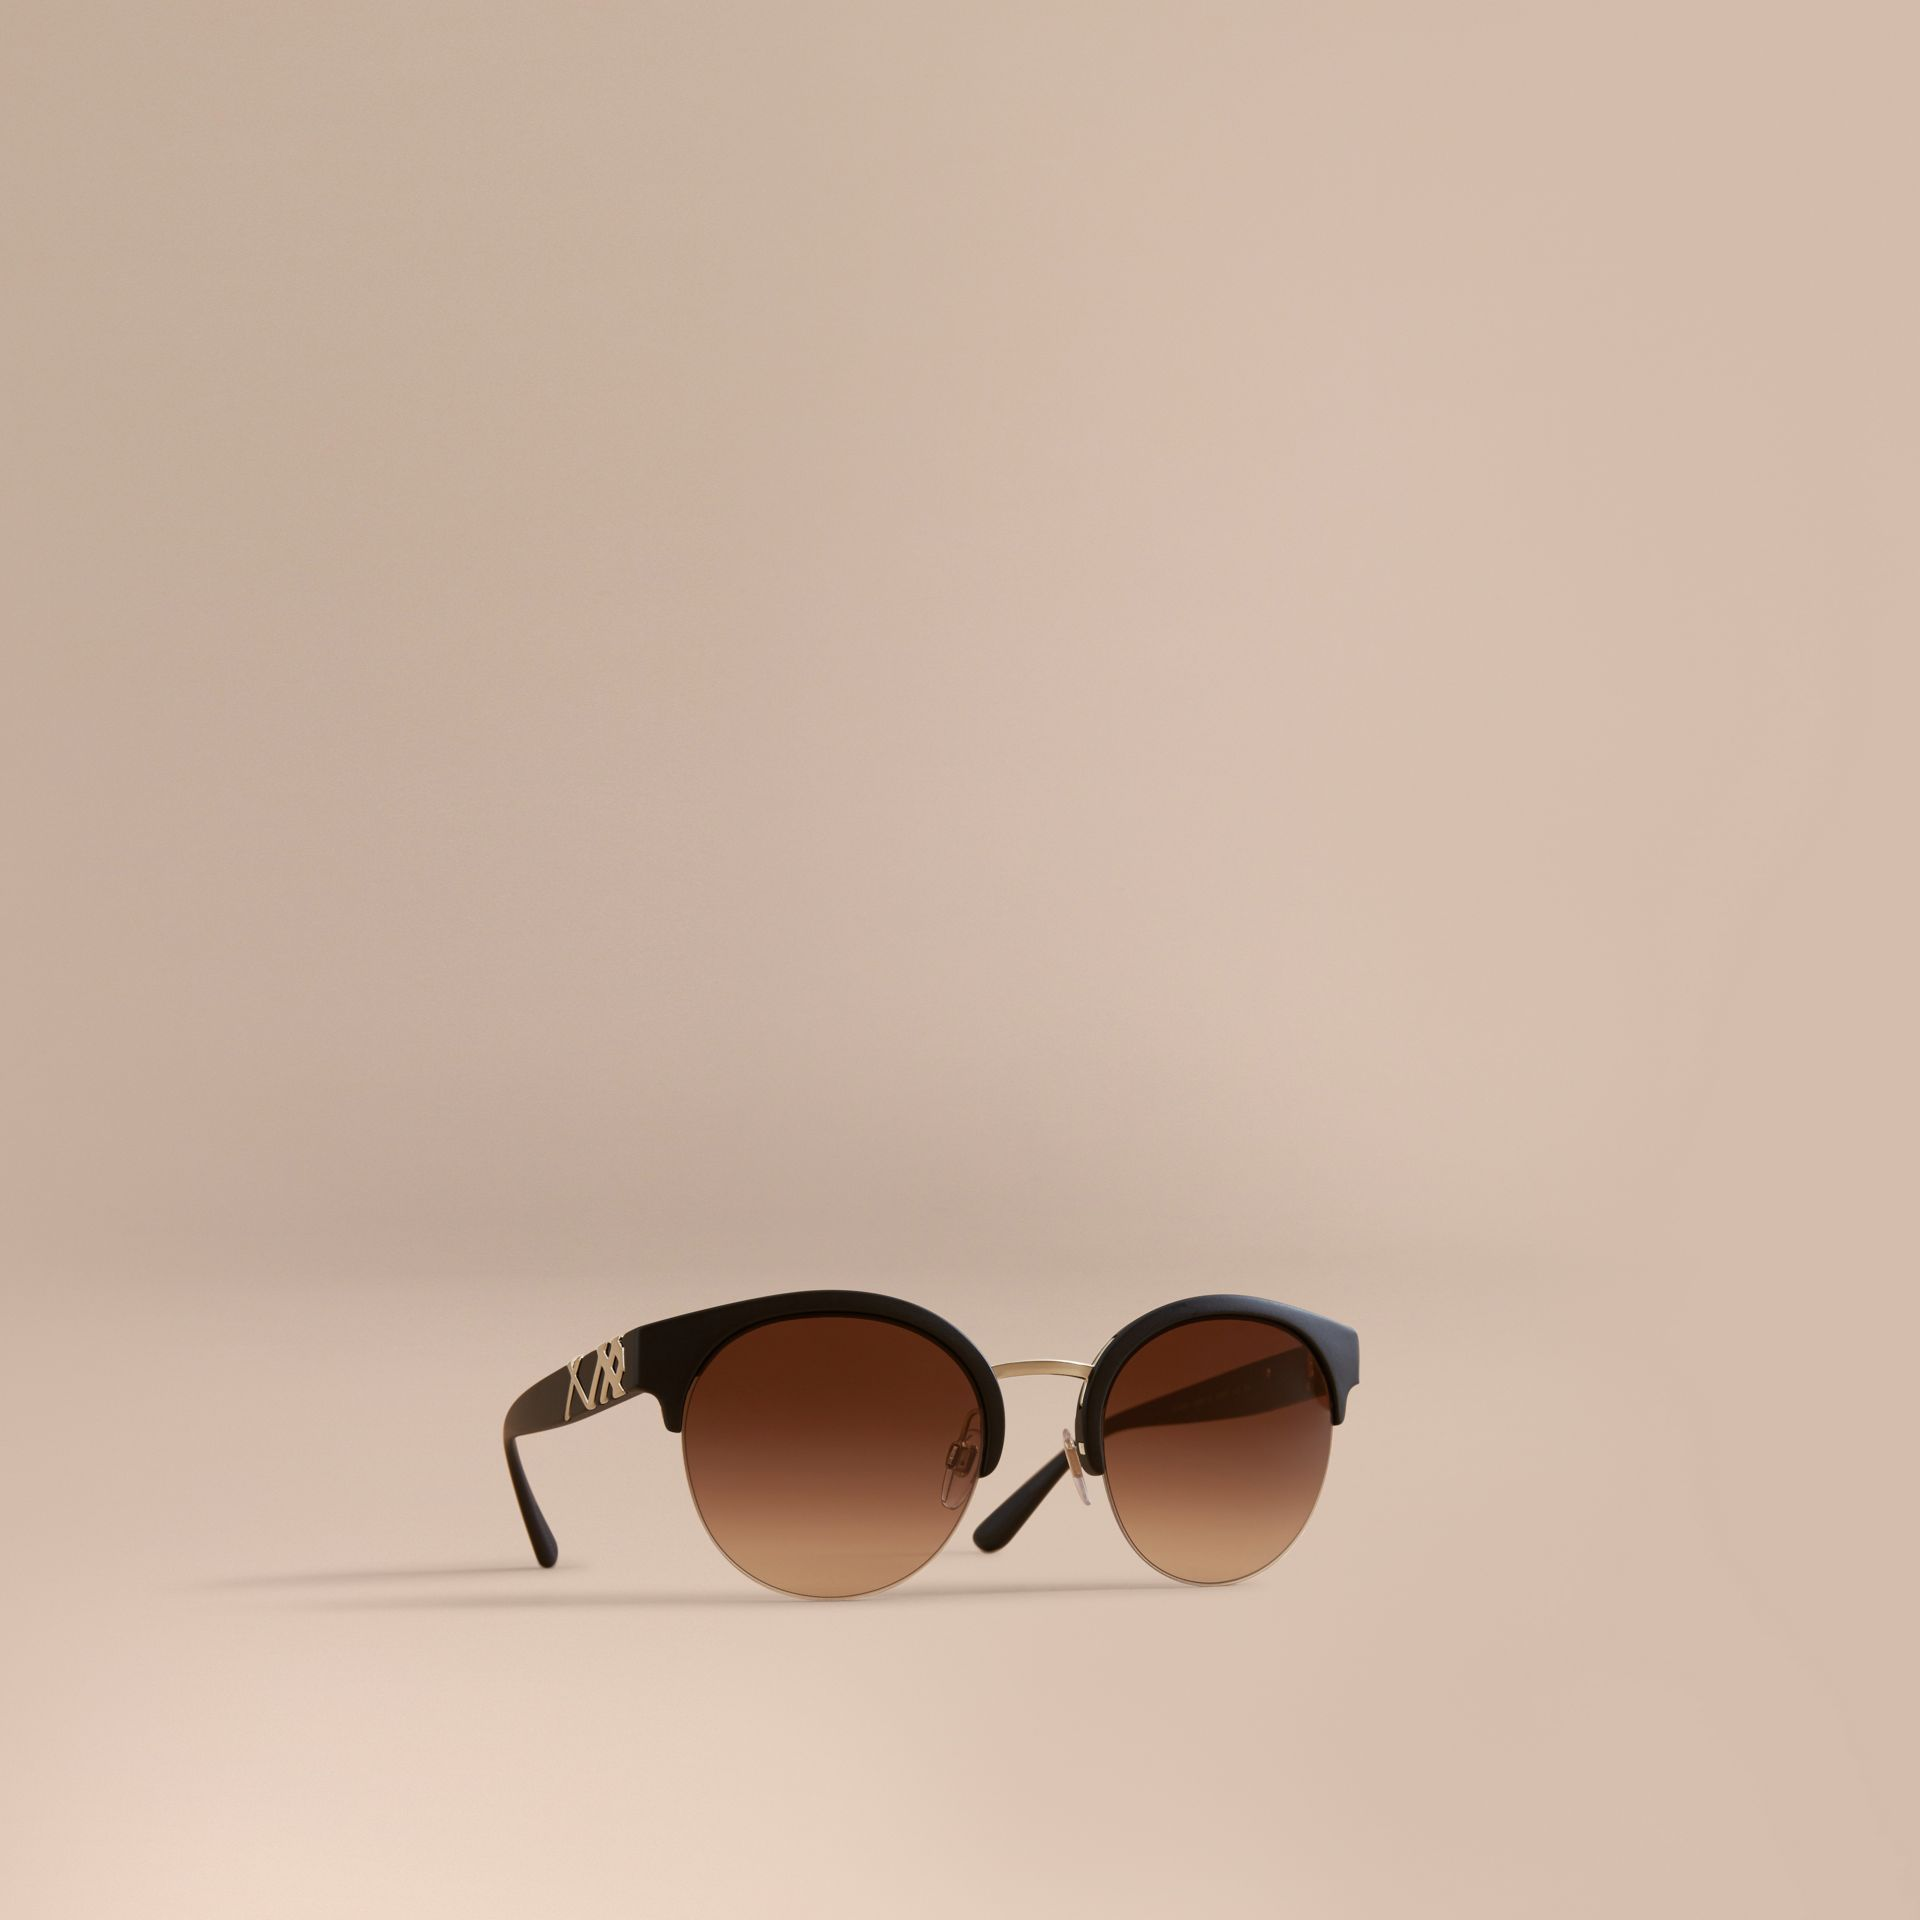 Check Detail Round Half-frame Sunglasses in Black - Women | Burberry Canada - gallery image 1